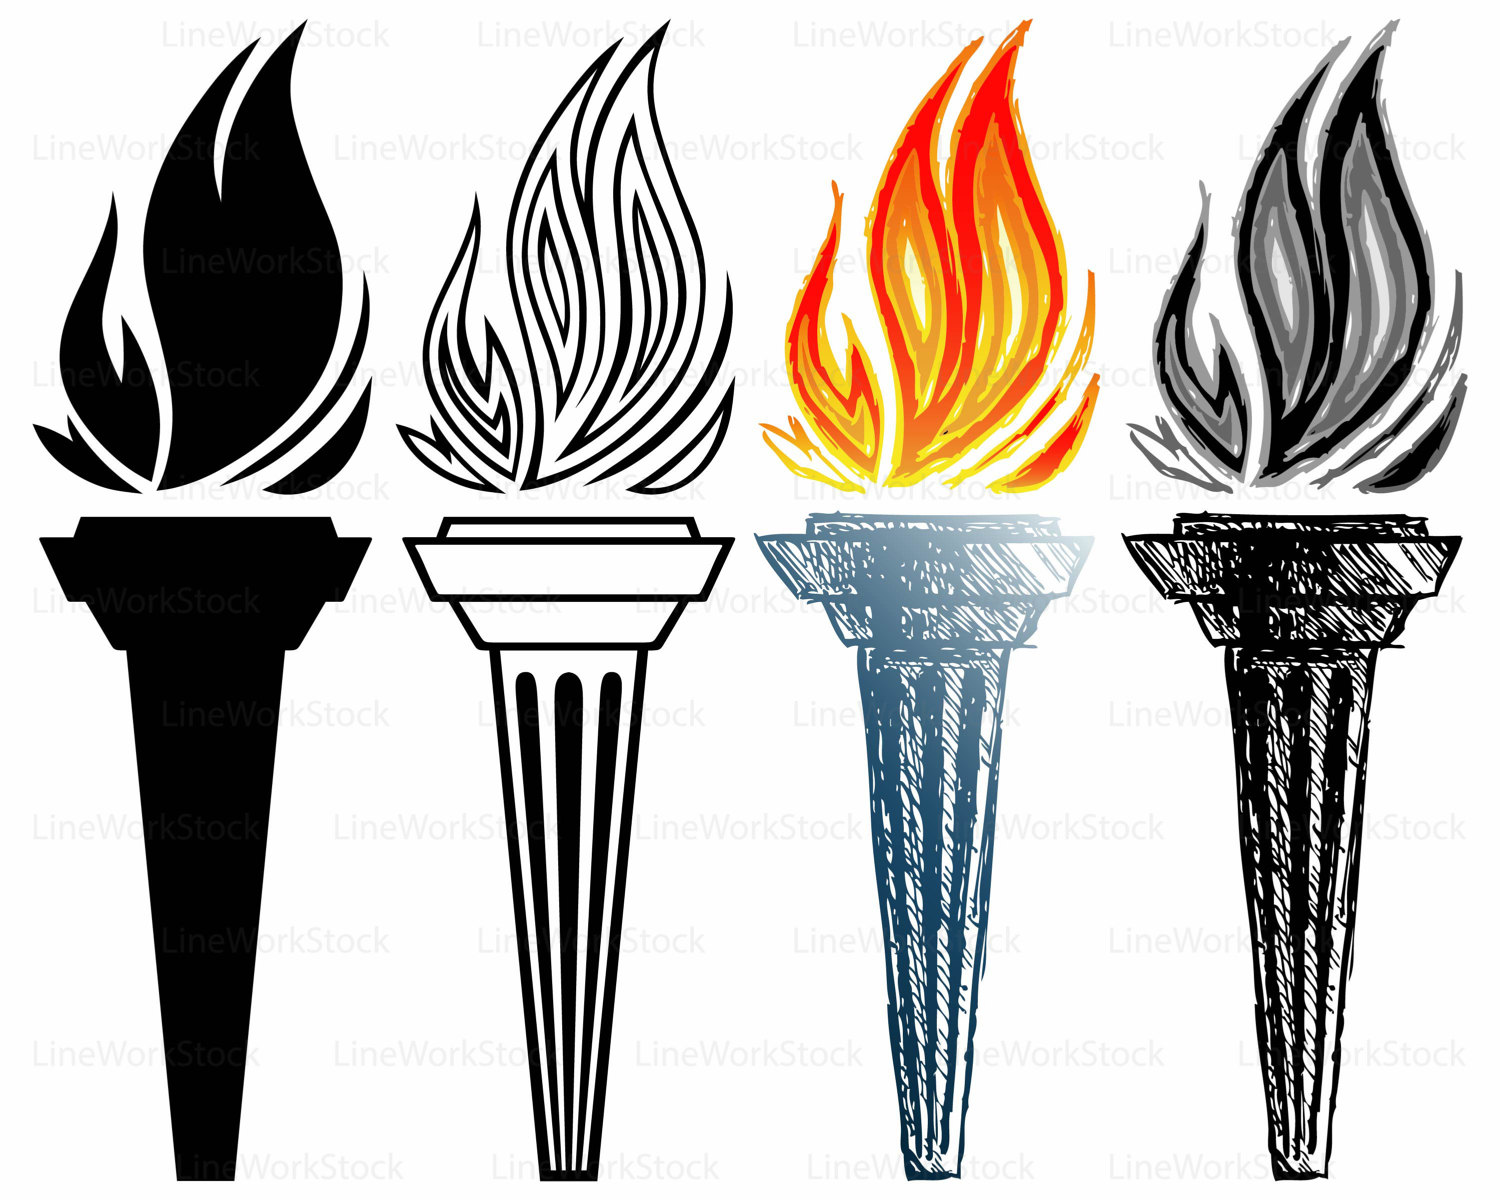 Torch clipart ancient. Free download best on